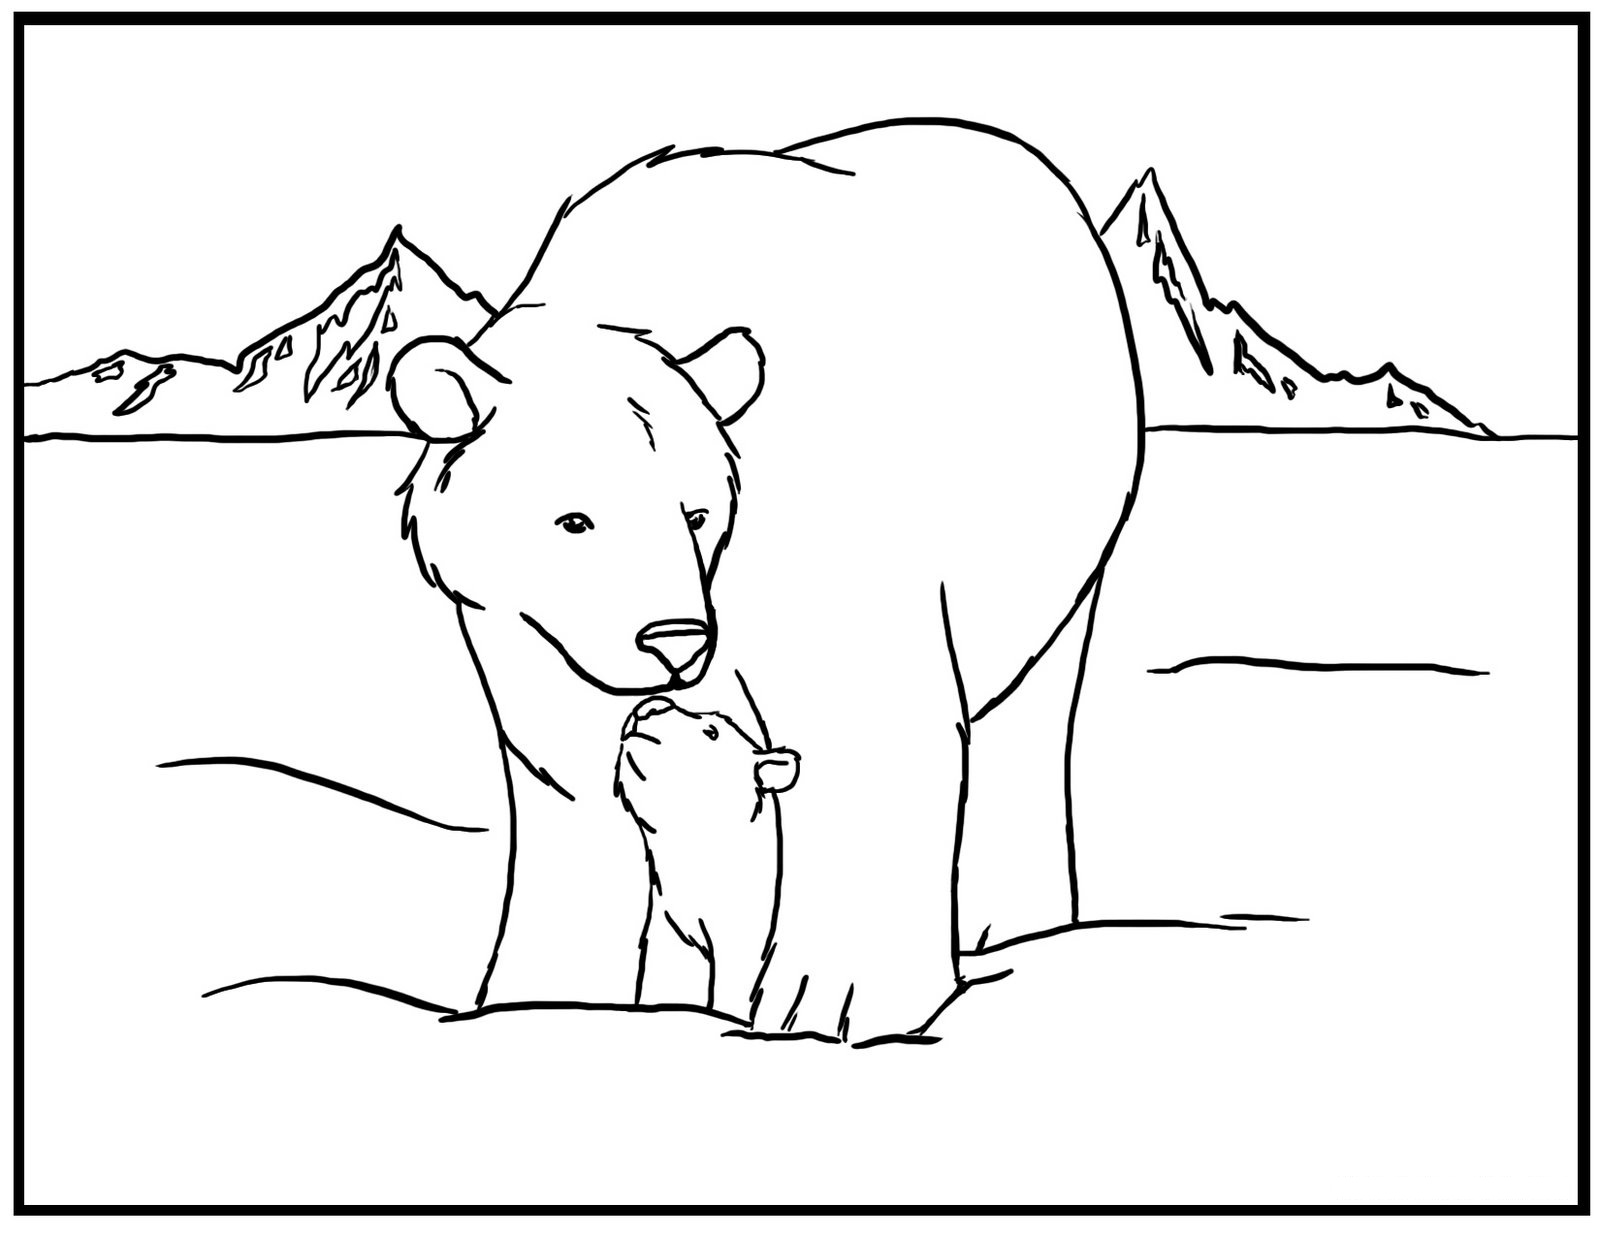 free printable polar bear coloring pages for kids, coloring